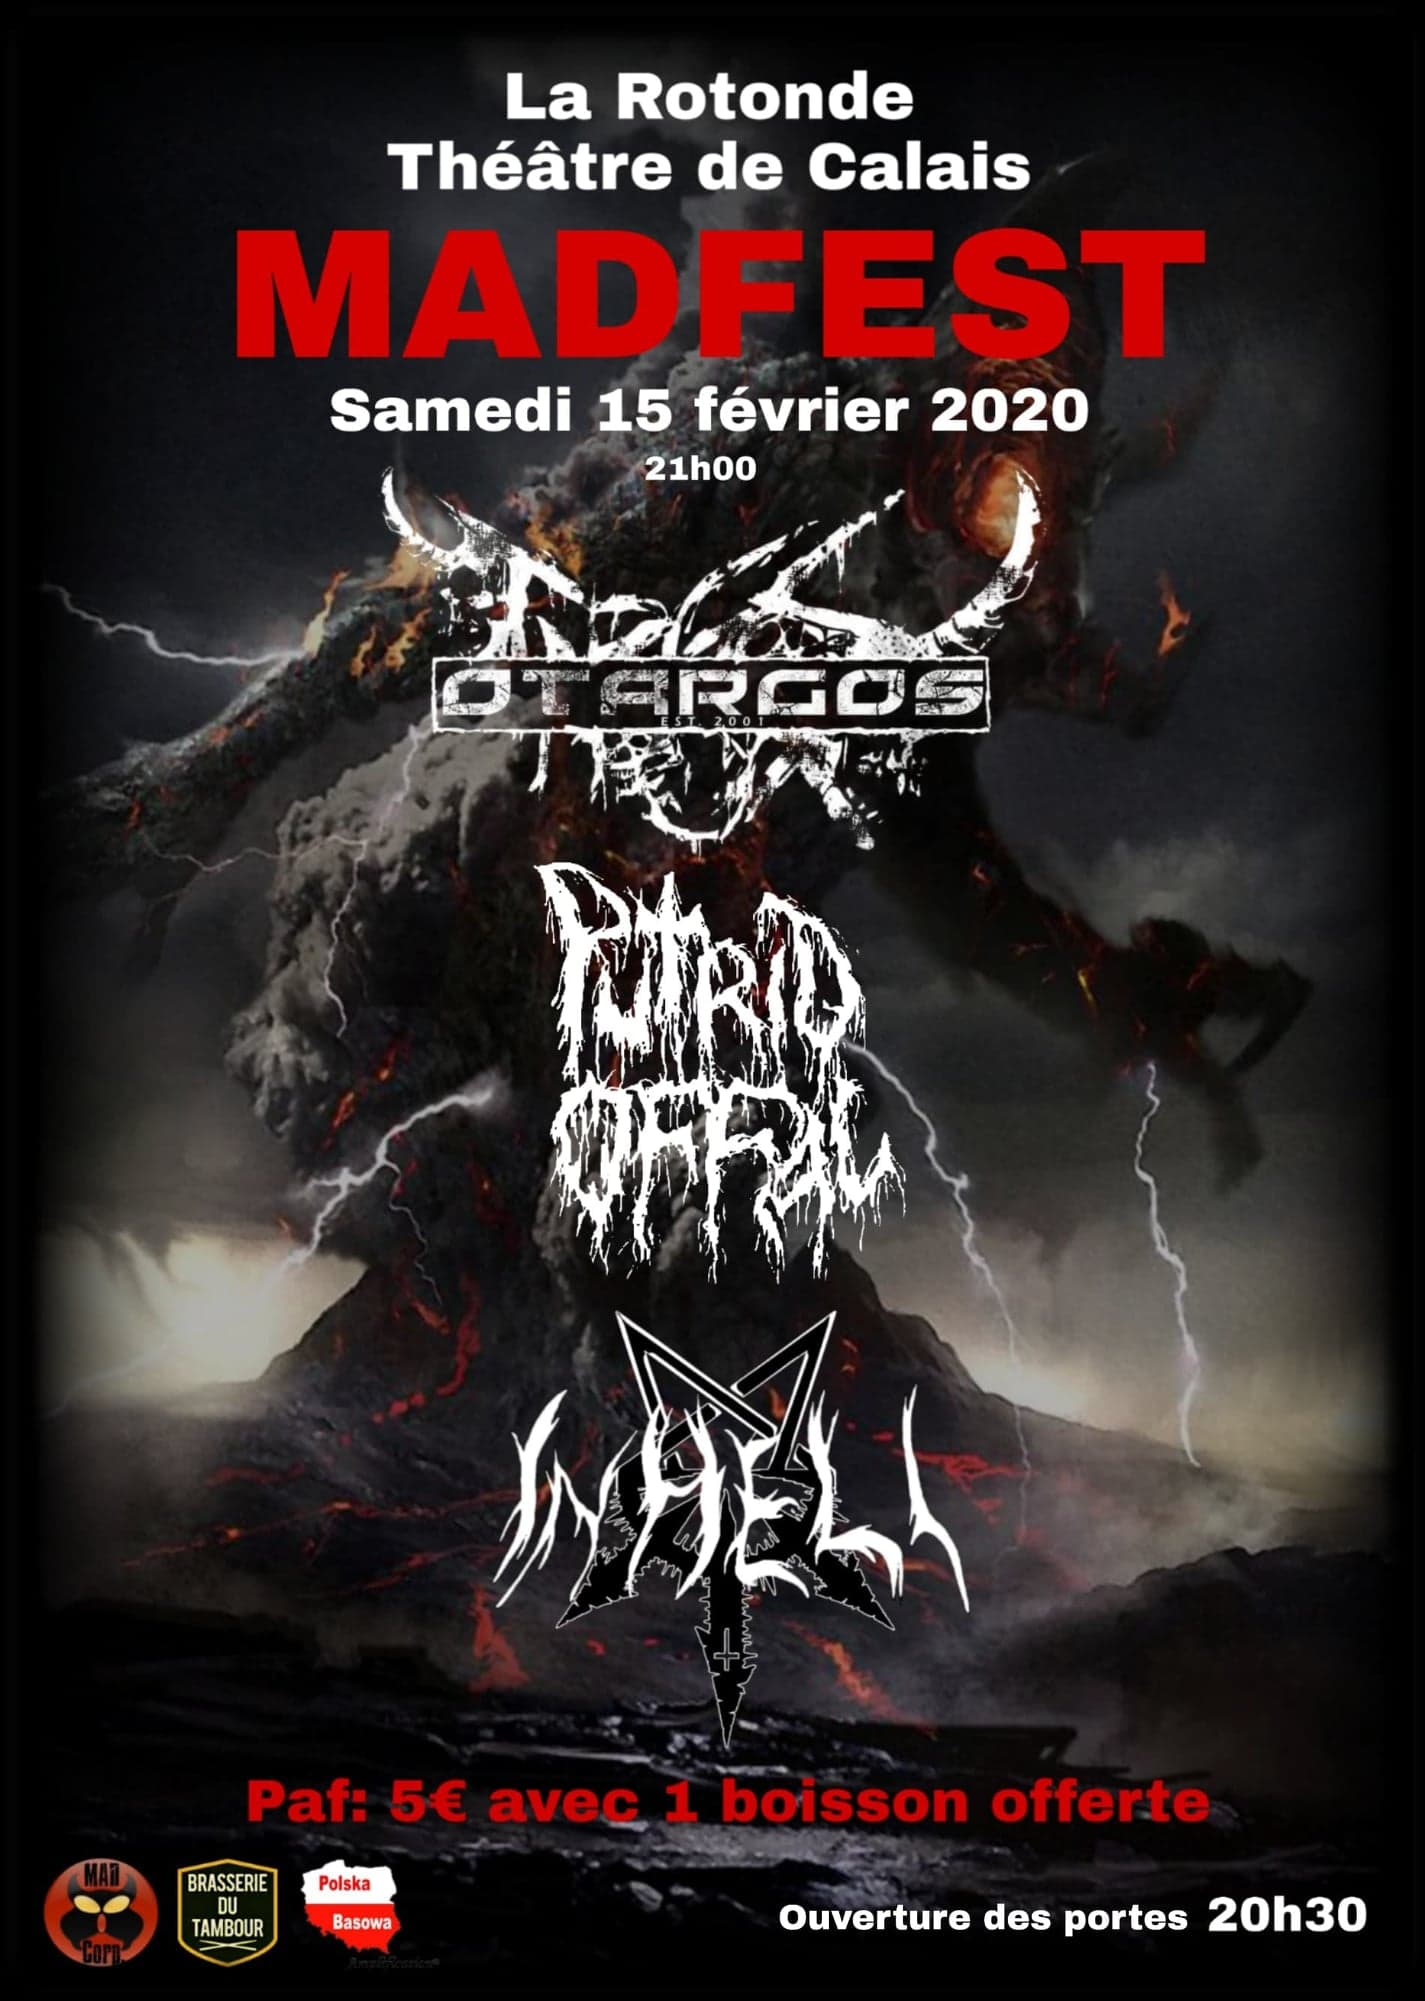 http://inhellband.com/IMAGESSITEWEB/AFFICHES-CONCERTS/CONCERTS-MADFEST-INHELL15-02-2020.jpg